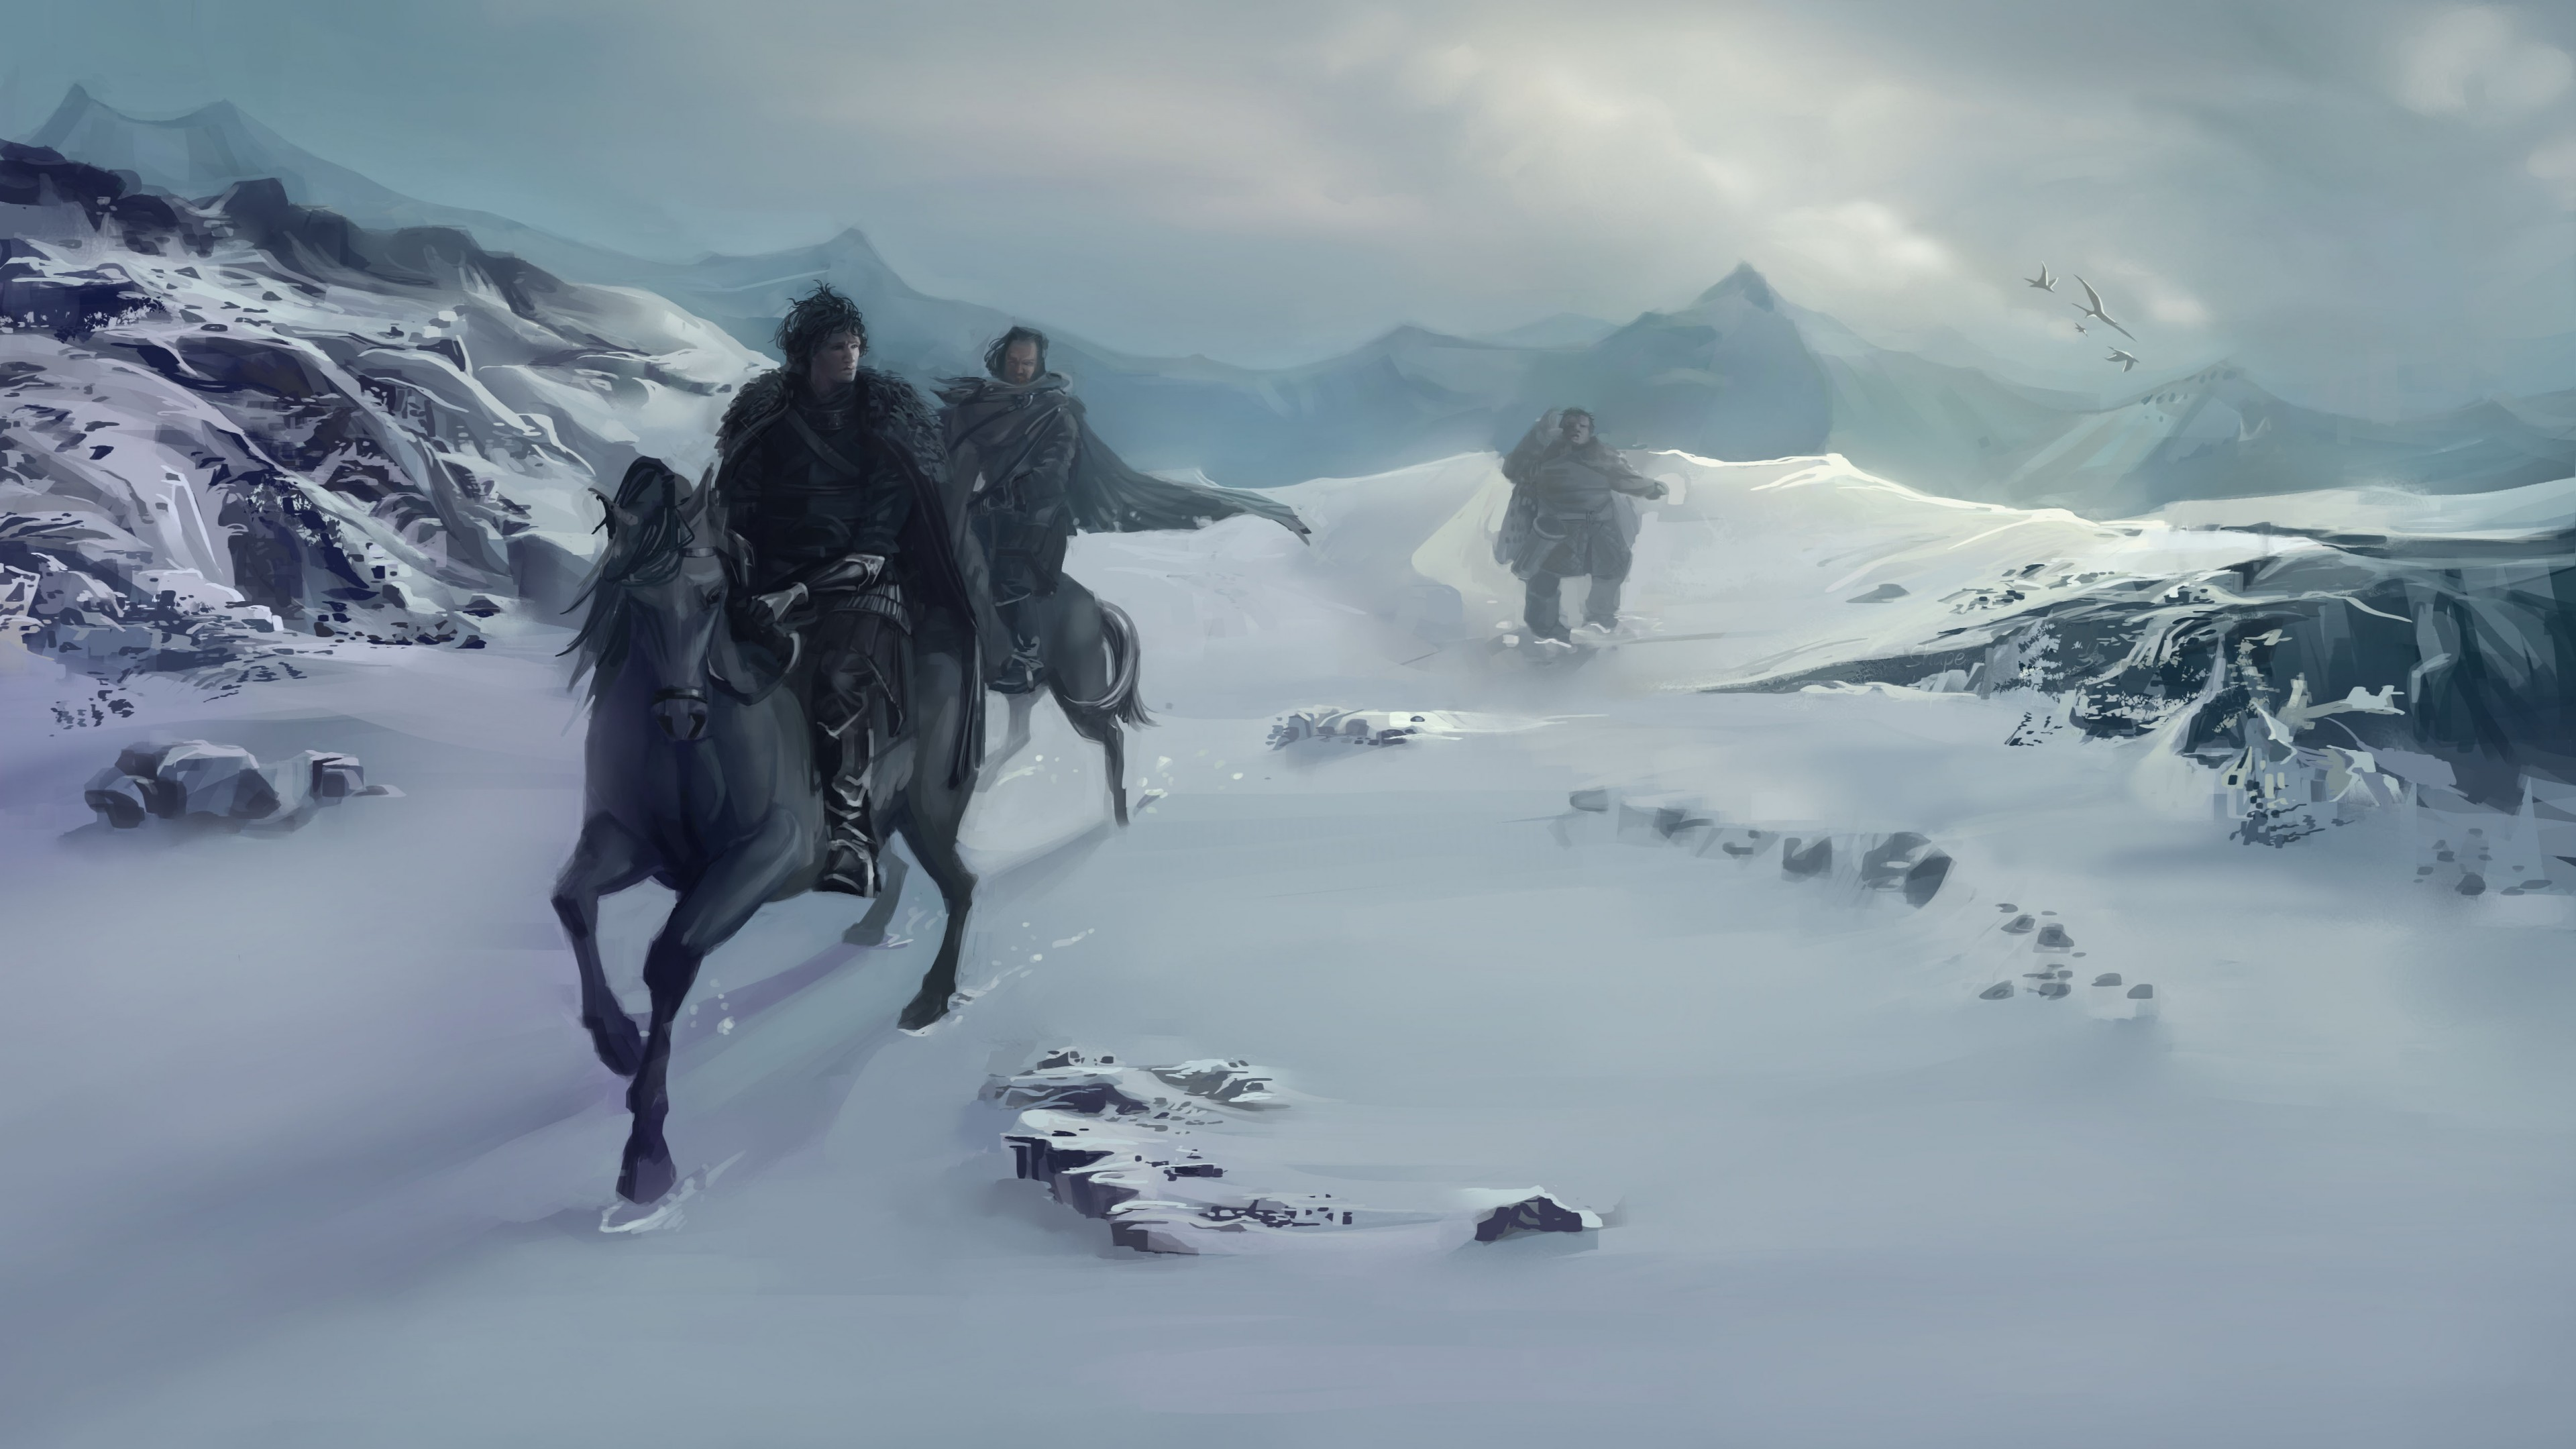 Wallpaper Game Of Thrones A Song Of Ice And Fire Dragon Season